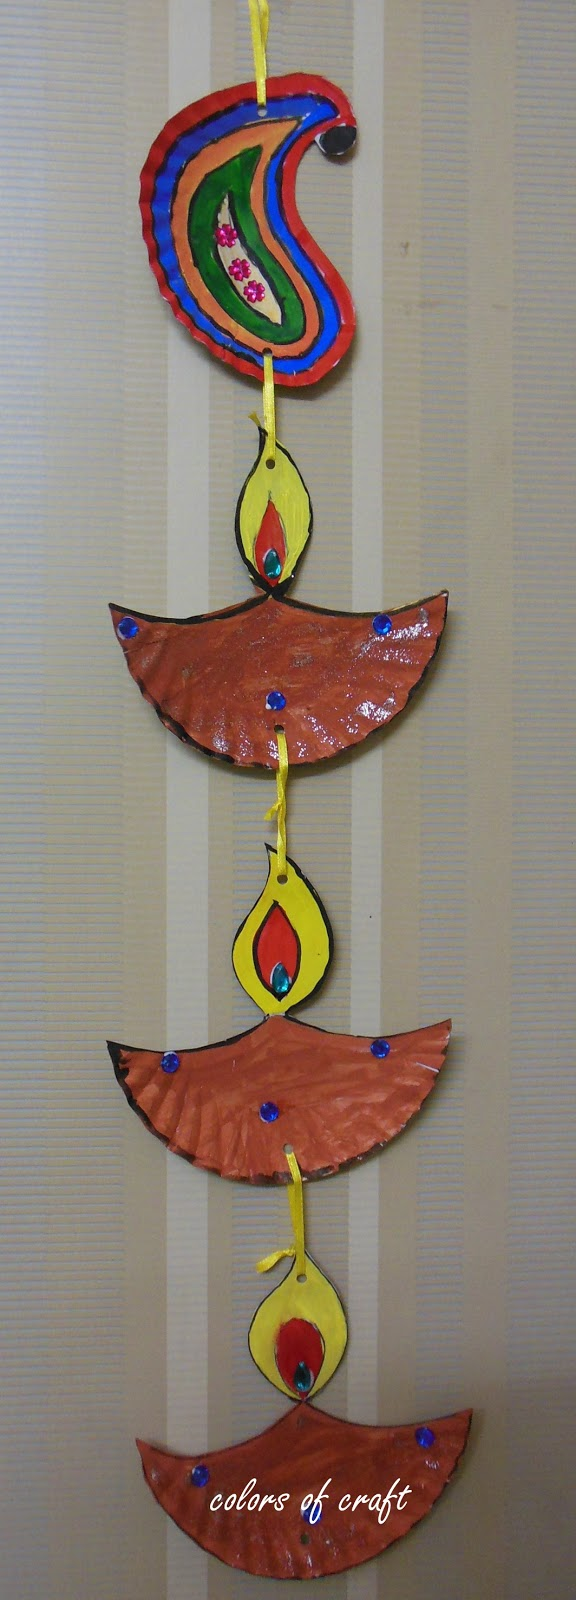 Paper Plate Wall Hanging & Colors of My Crafty World: Paper Plate Wall Hanging